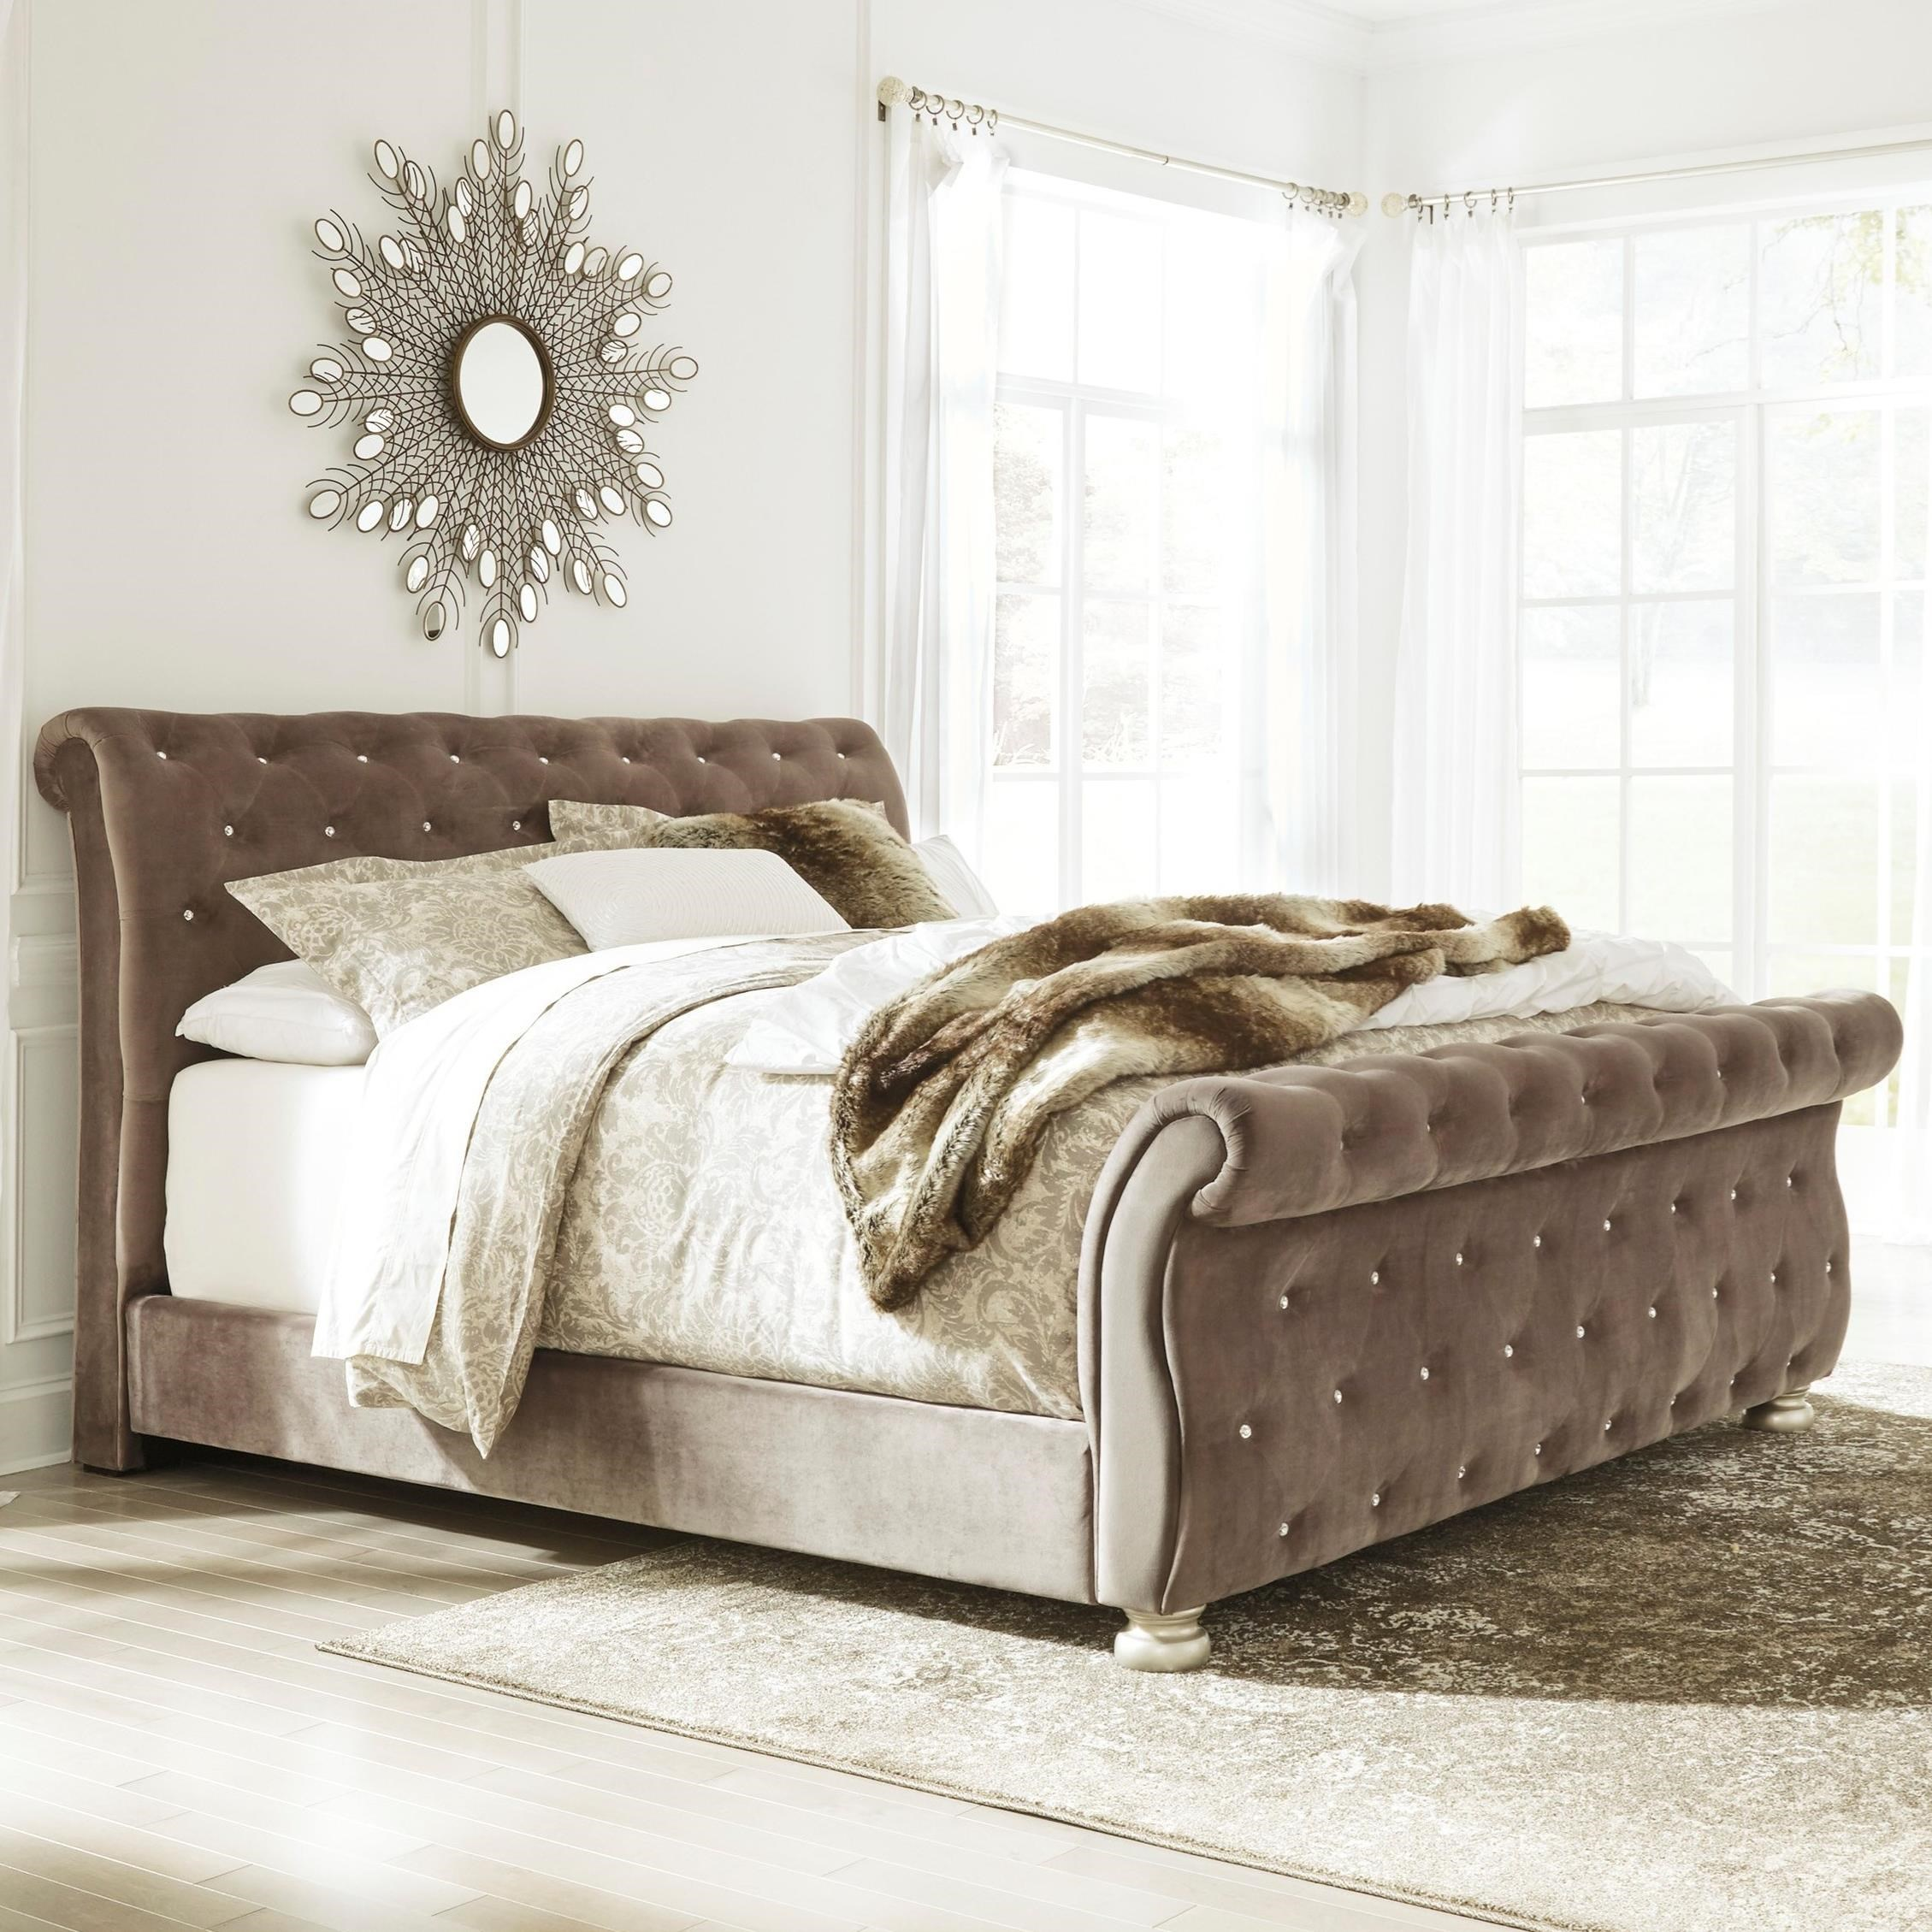 upholstered sleigh beds. Signature Design By Ashley CassimoreQueen Upholstered Sleigh Bed Upholstered Sleigh Beds L